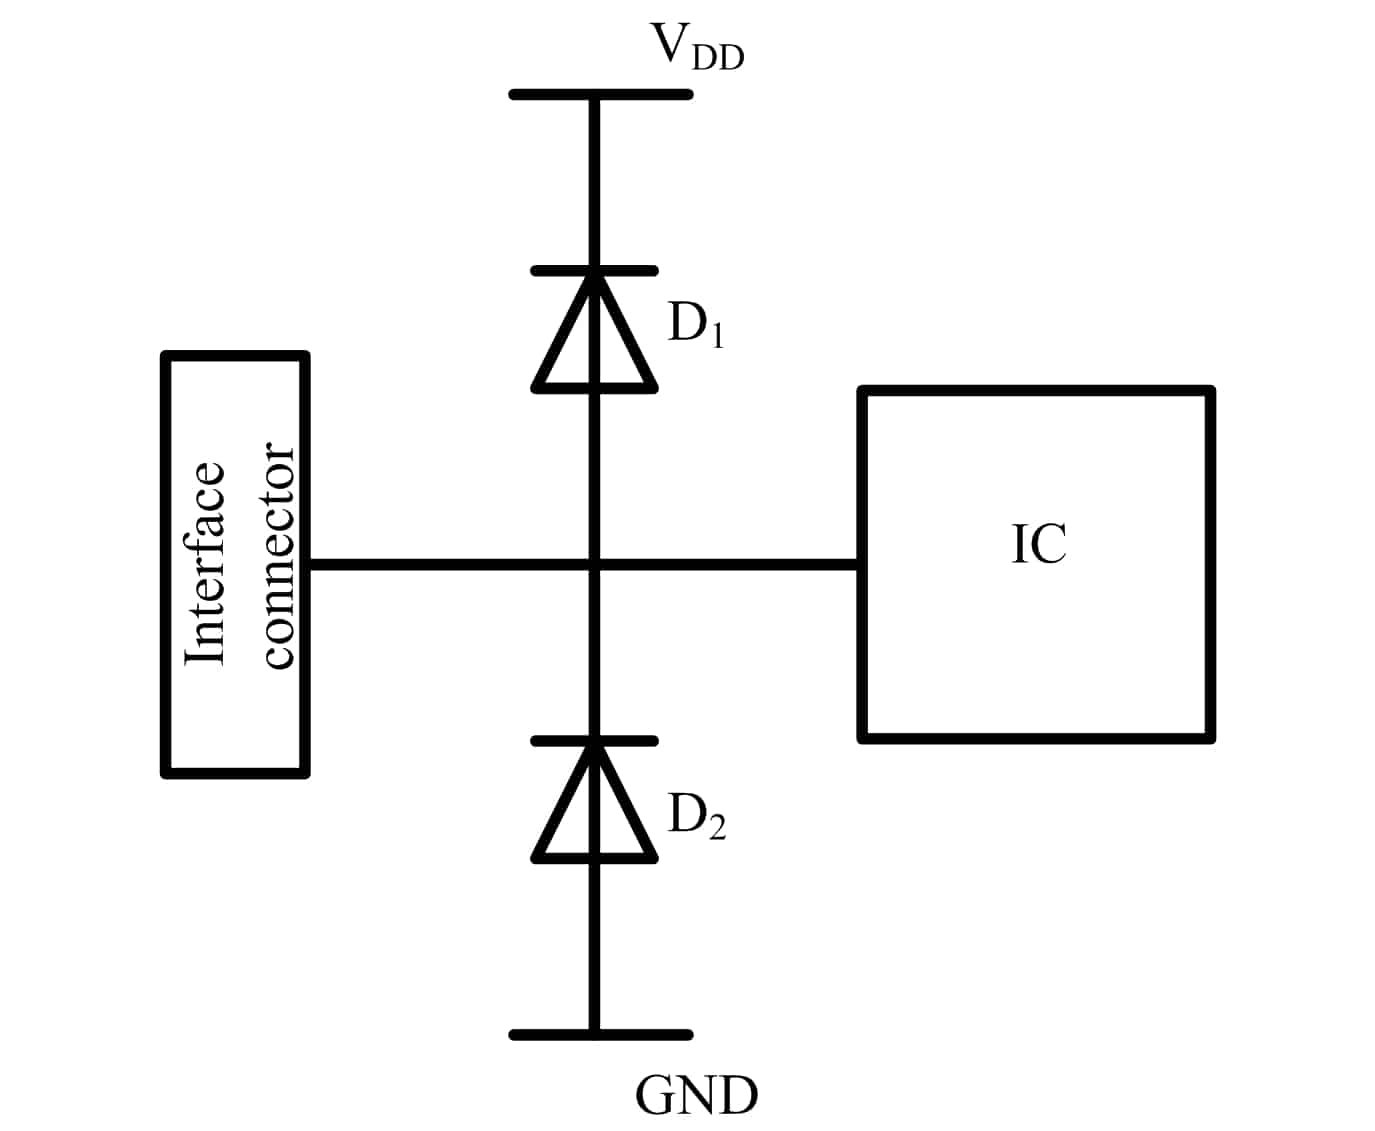 The diodes D1 and D2 are reversed biased at when the circuit is operating normal